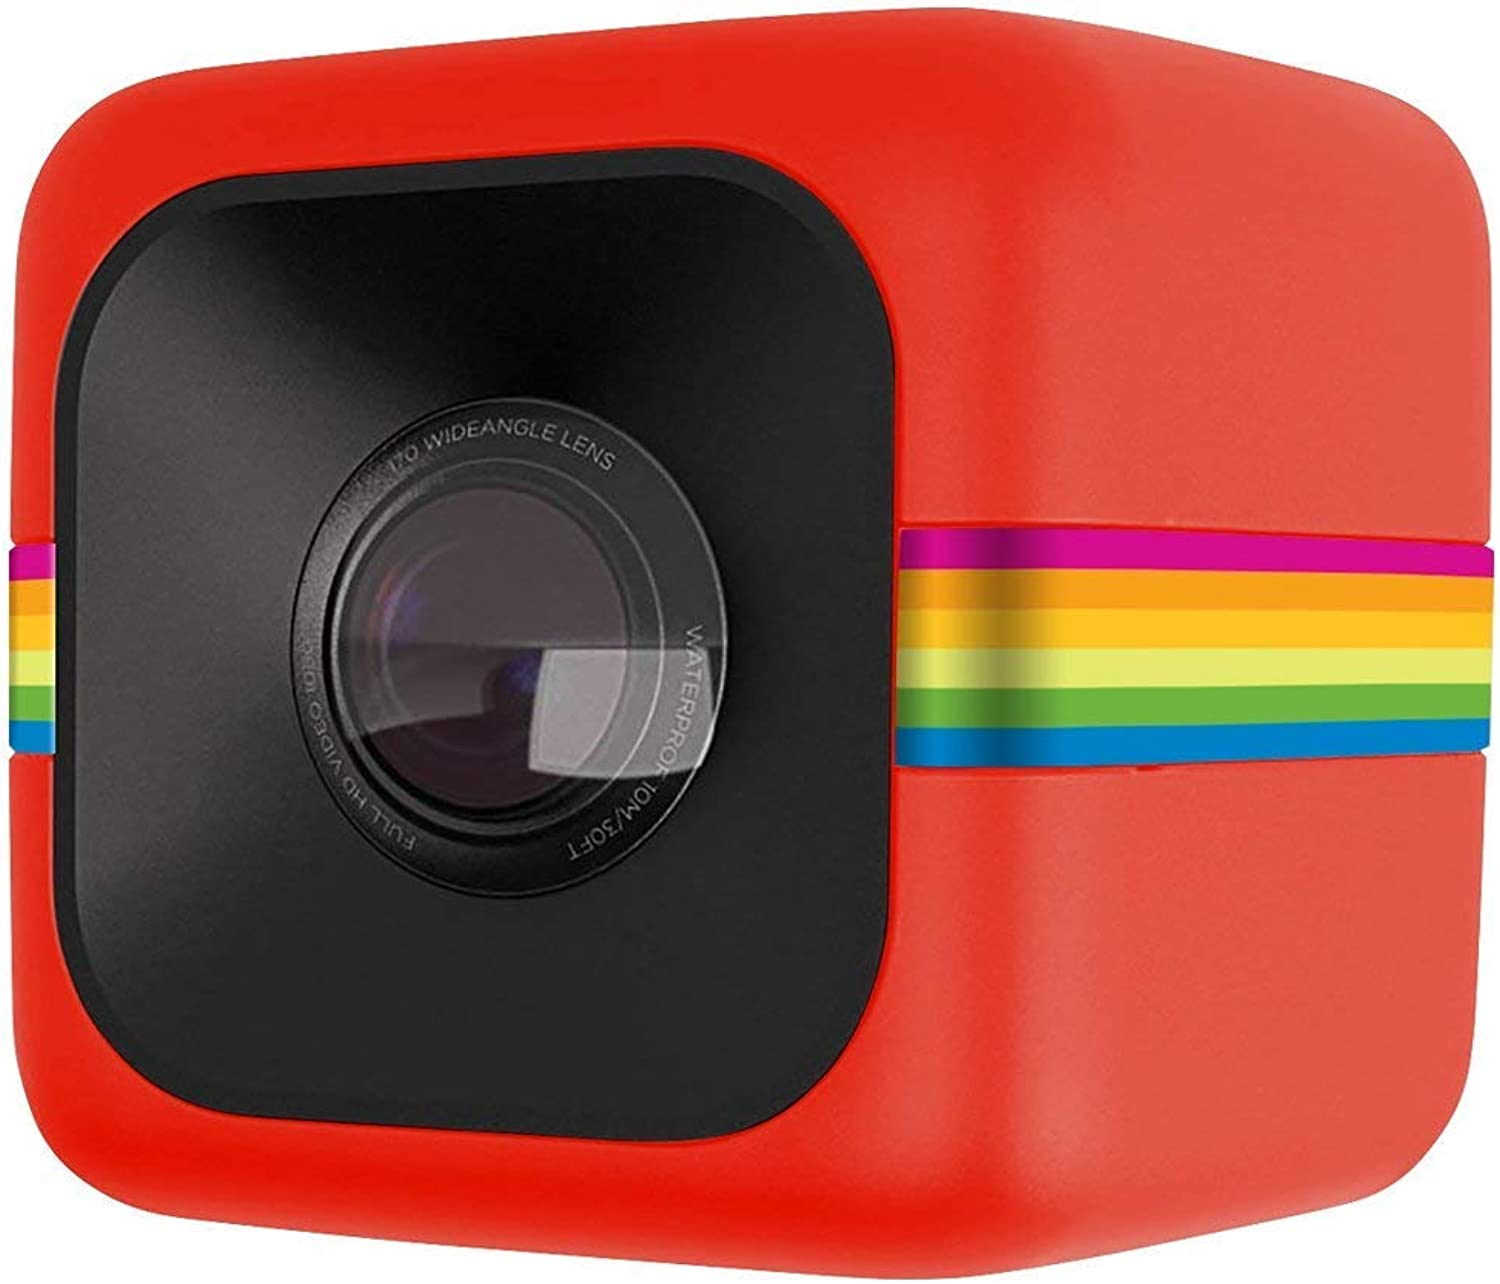 Polaroid Cube Act II HD 1080P Mountable WeatherResistant Lifestyle Action Video Camera (Red) 6MP Still Camera w Image Stabilization, Sound Recording, Low Light Capability & Other Updated Feature